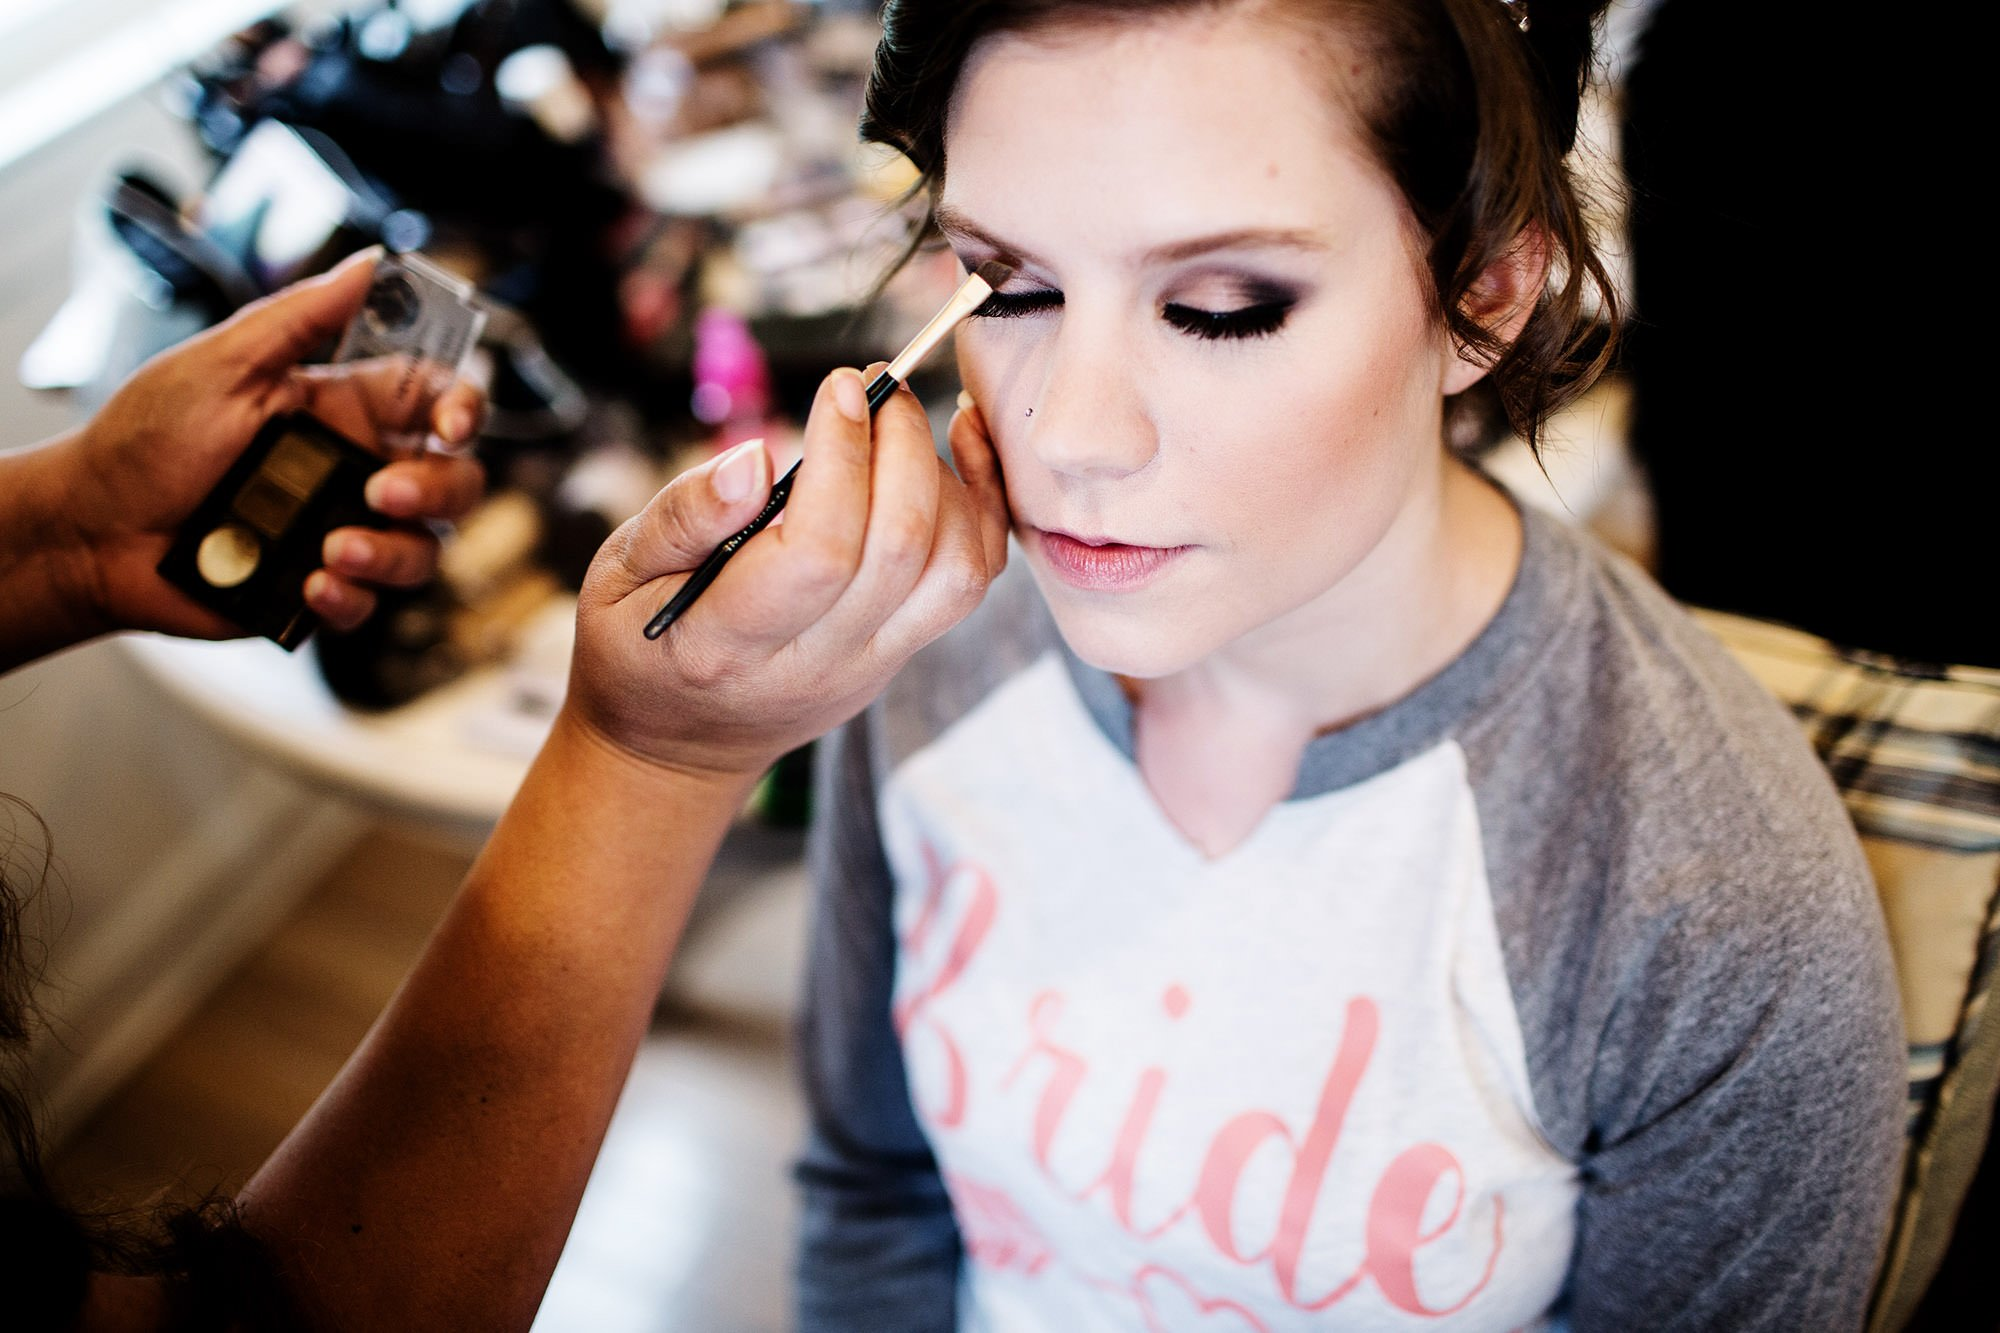 The bride has makeup applied prior to her ceremony at Oaks Waterfront Inn.